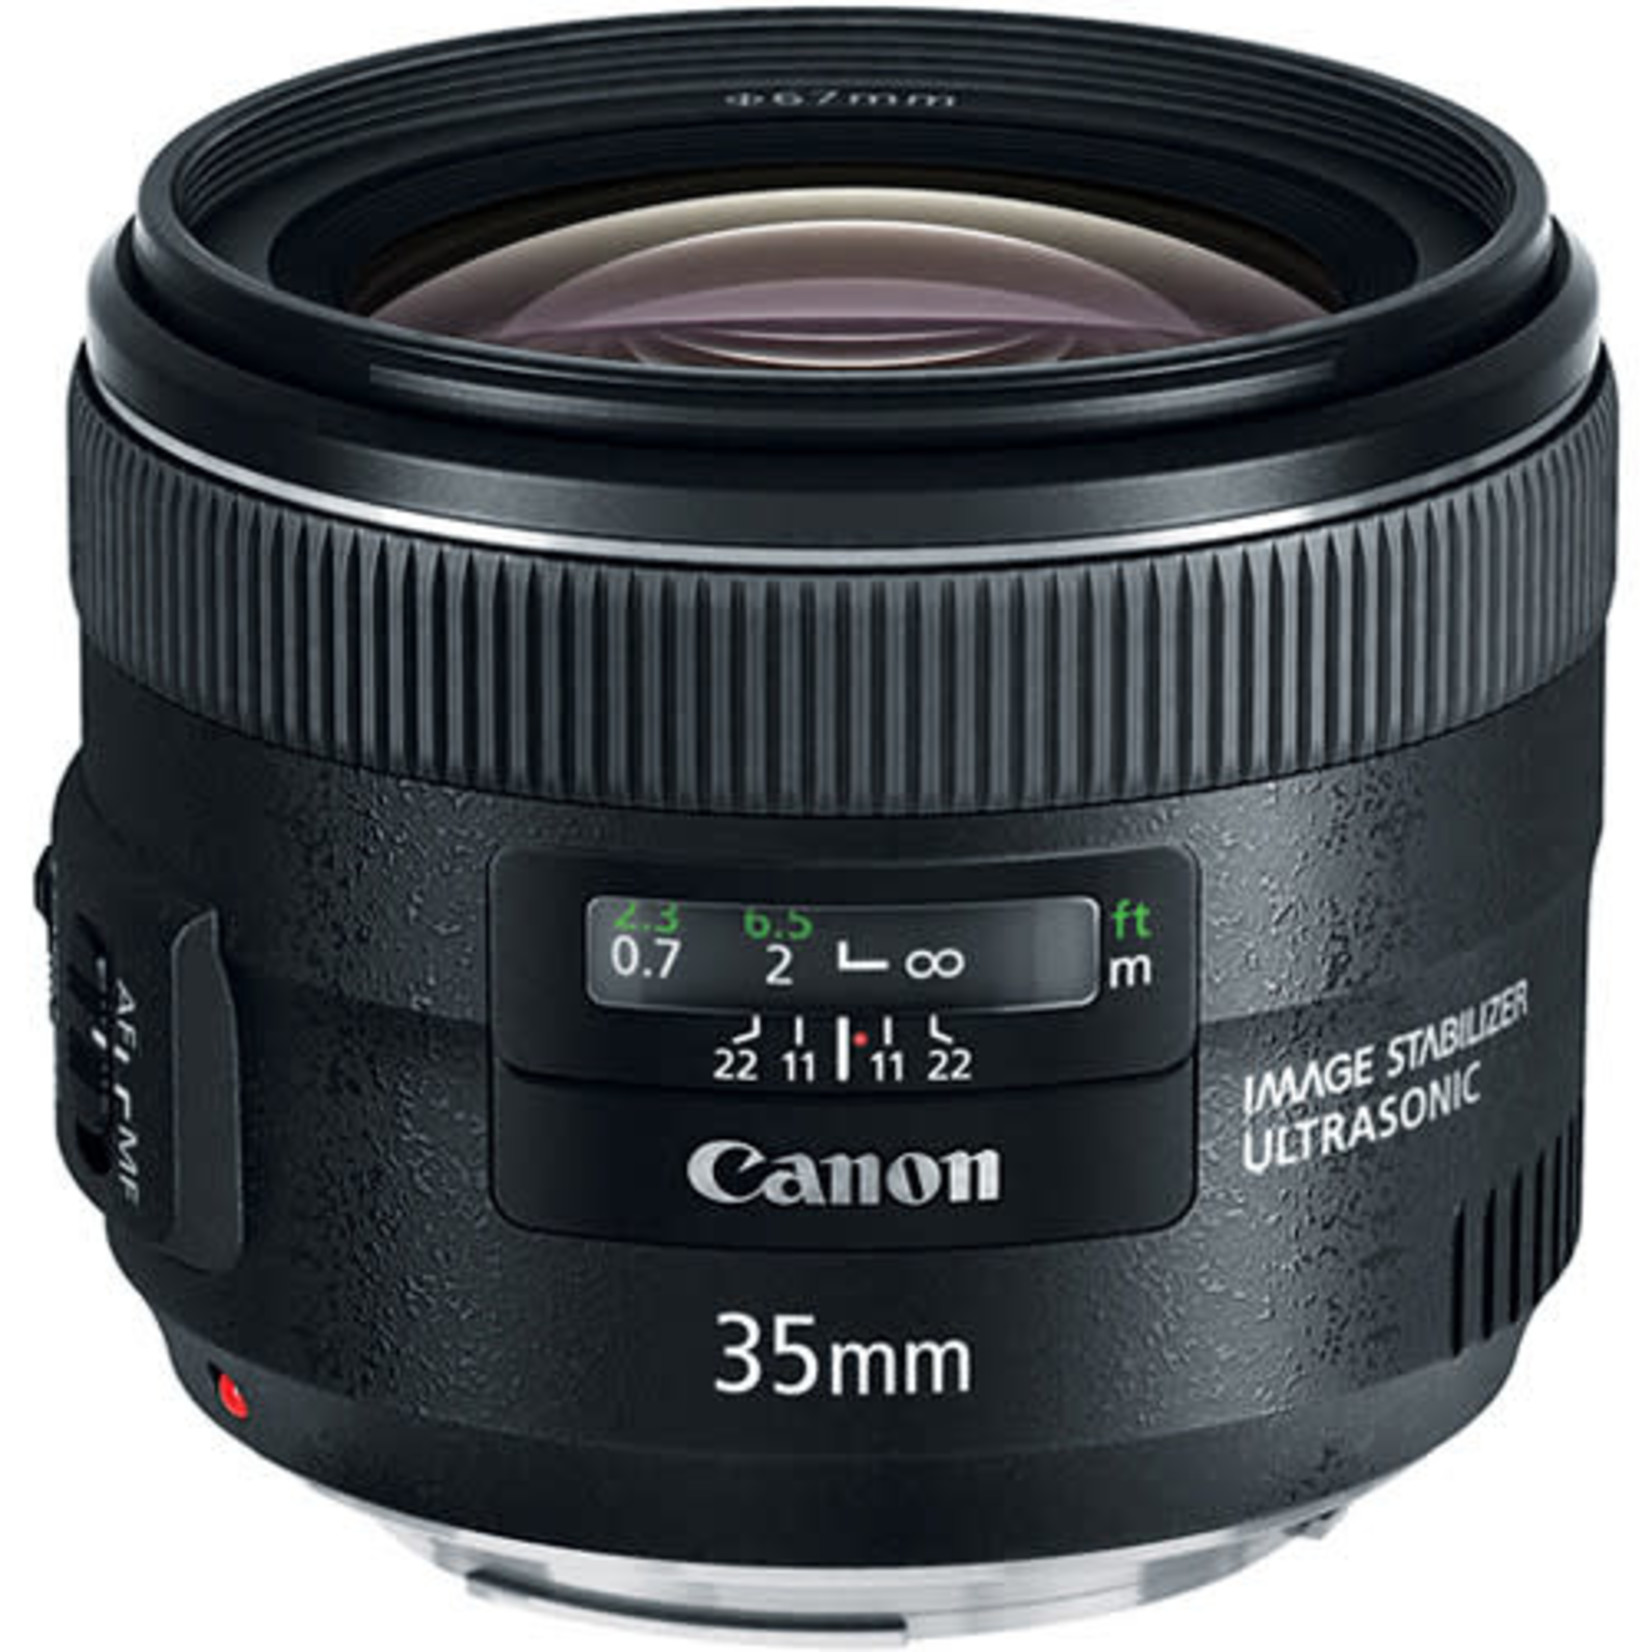 Canon Canon EF 35mm f/2 IS USM Lens